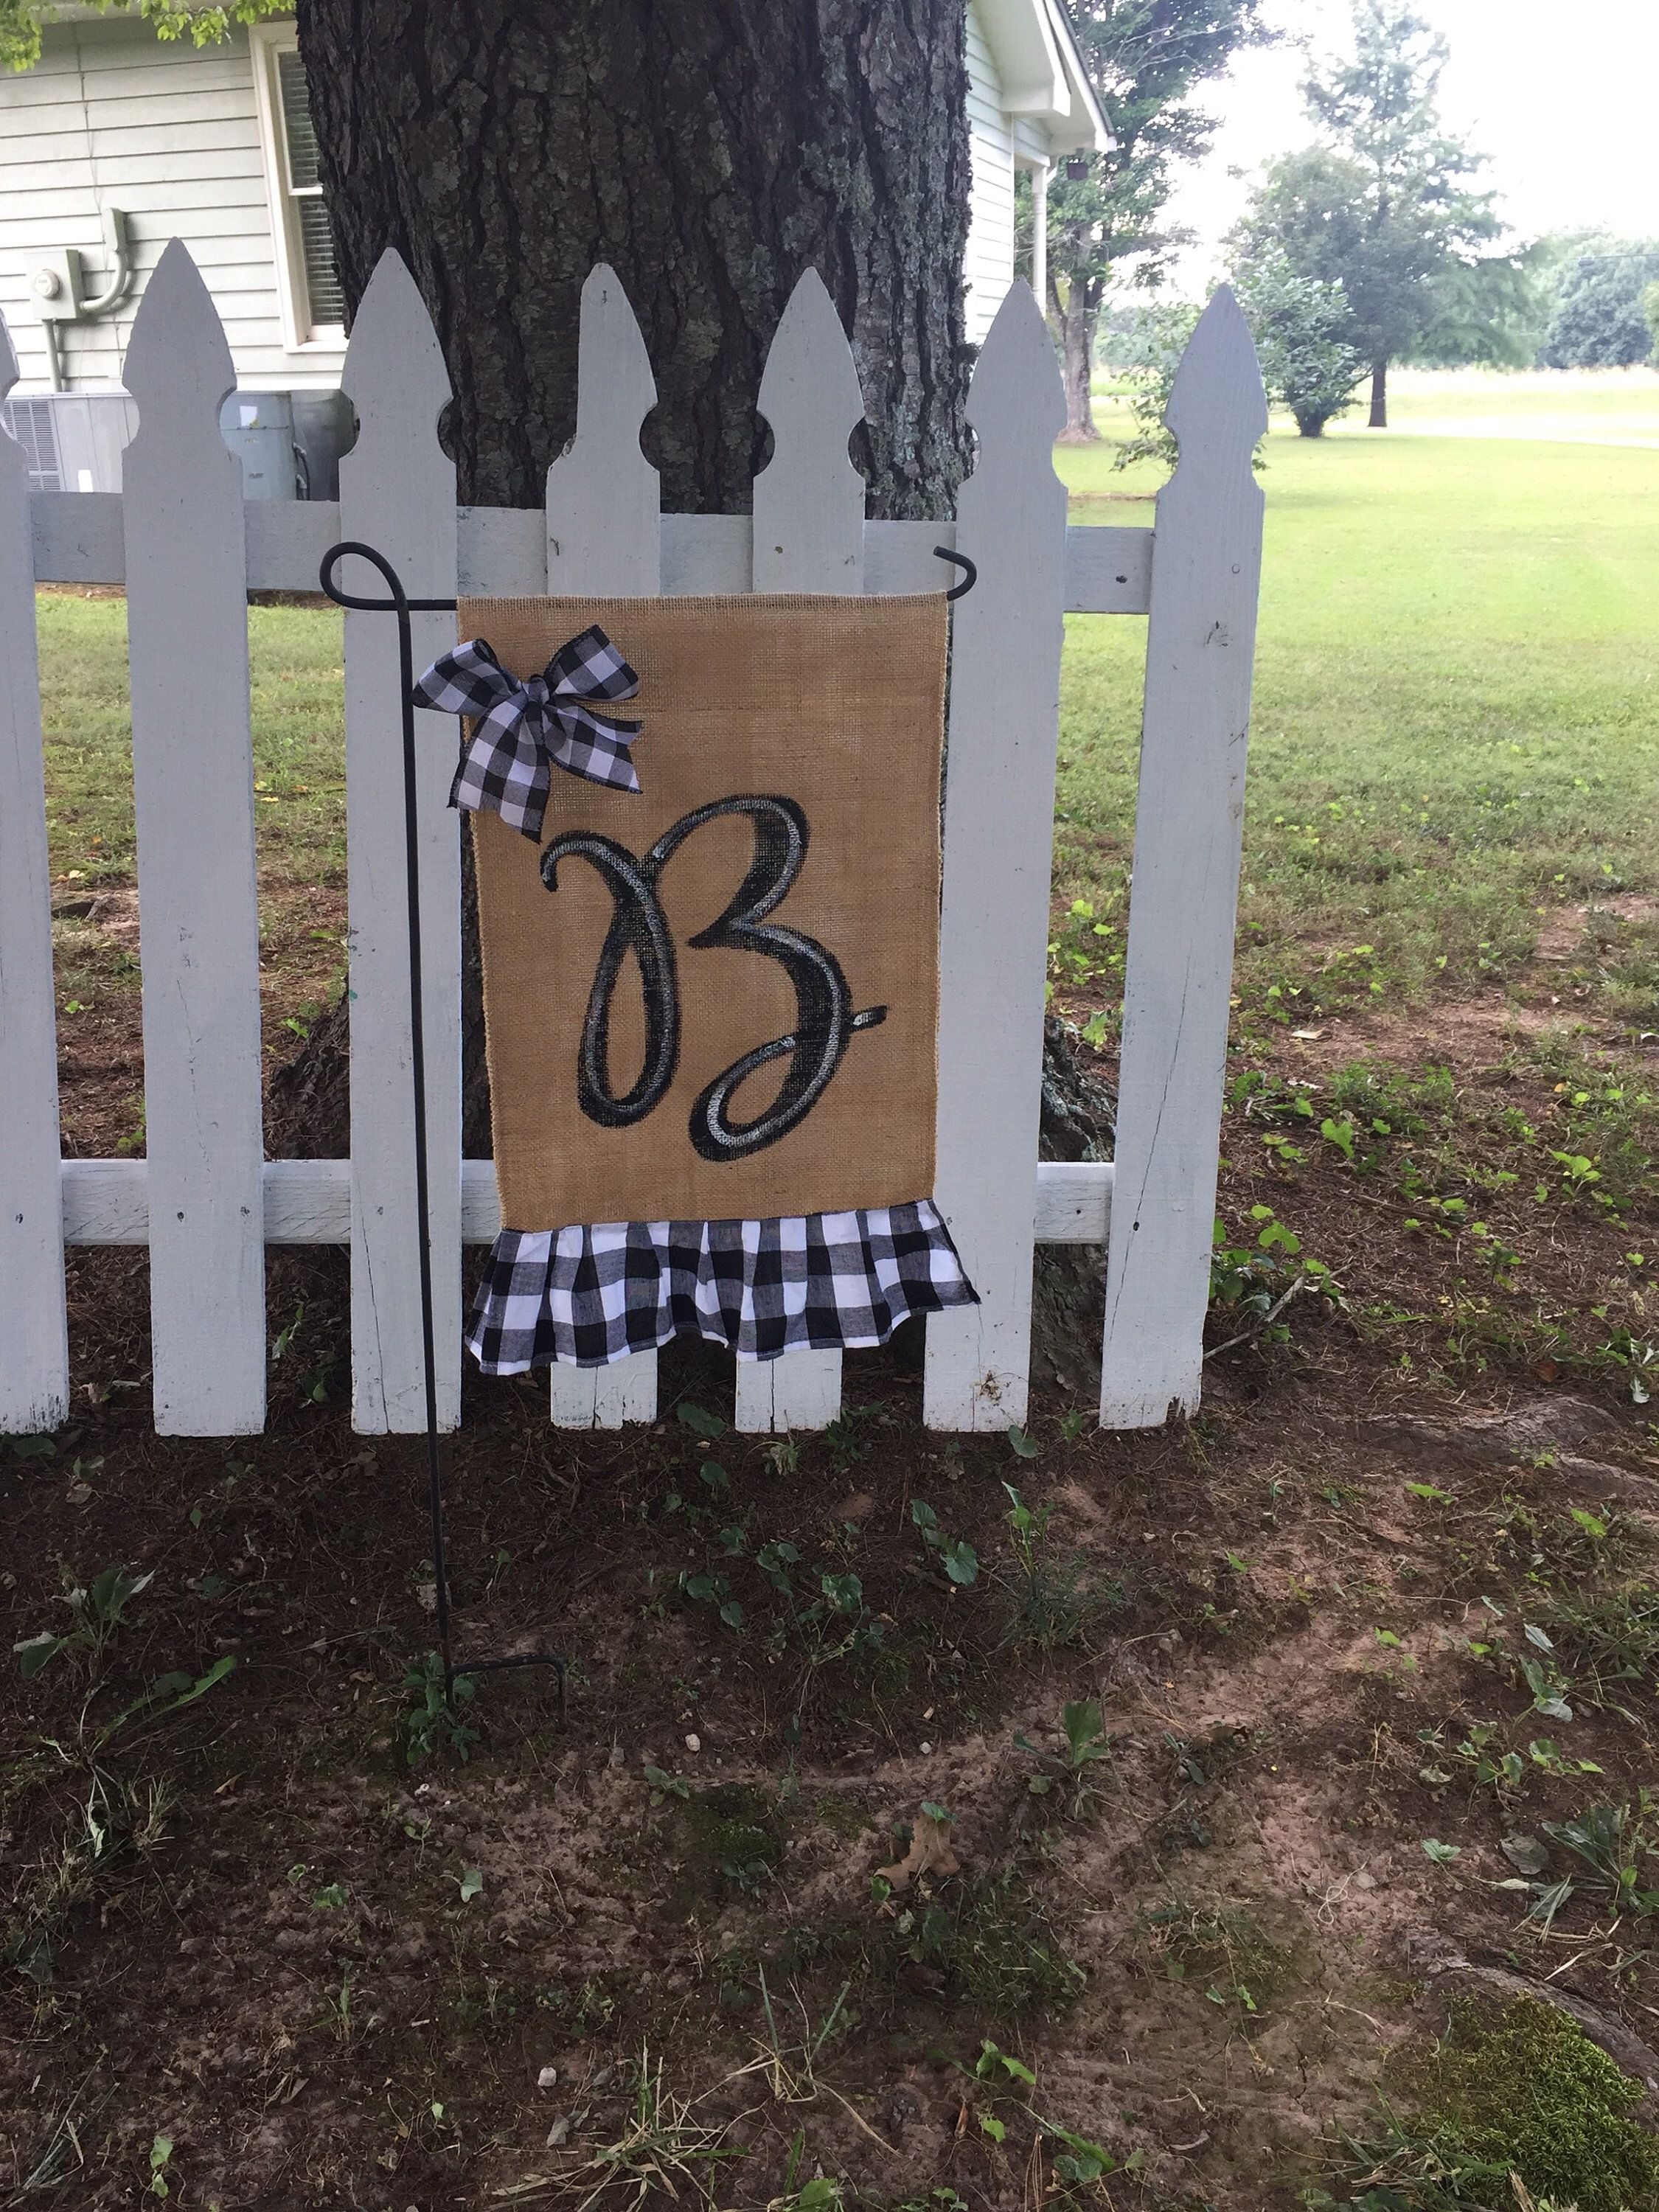 Excited To Share This Item From My Etsy Shop Farmhouse Buffalo Plaid Decor Burlap Yard Flag Fall Halloween A Plaid Decor Buffalo Plaid Decor Burlap Yard Flag